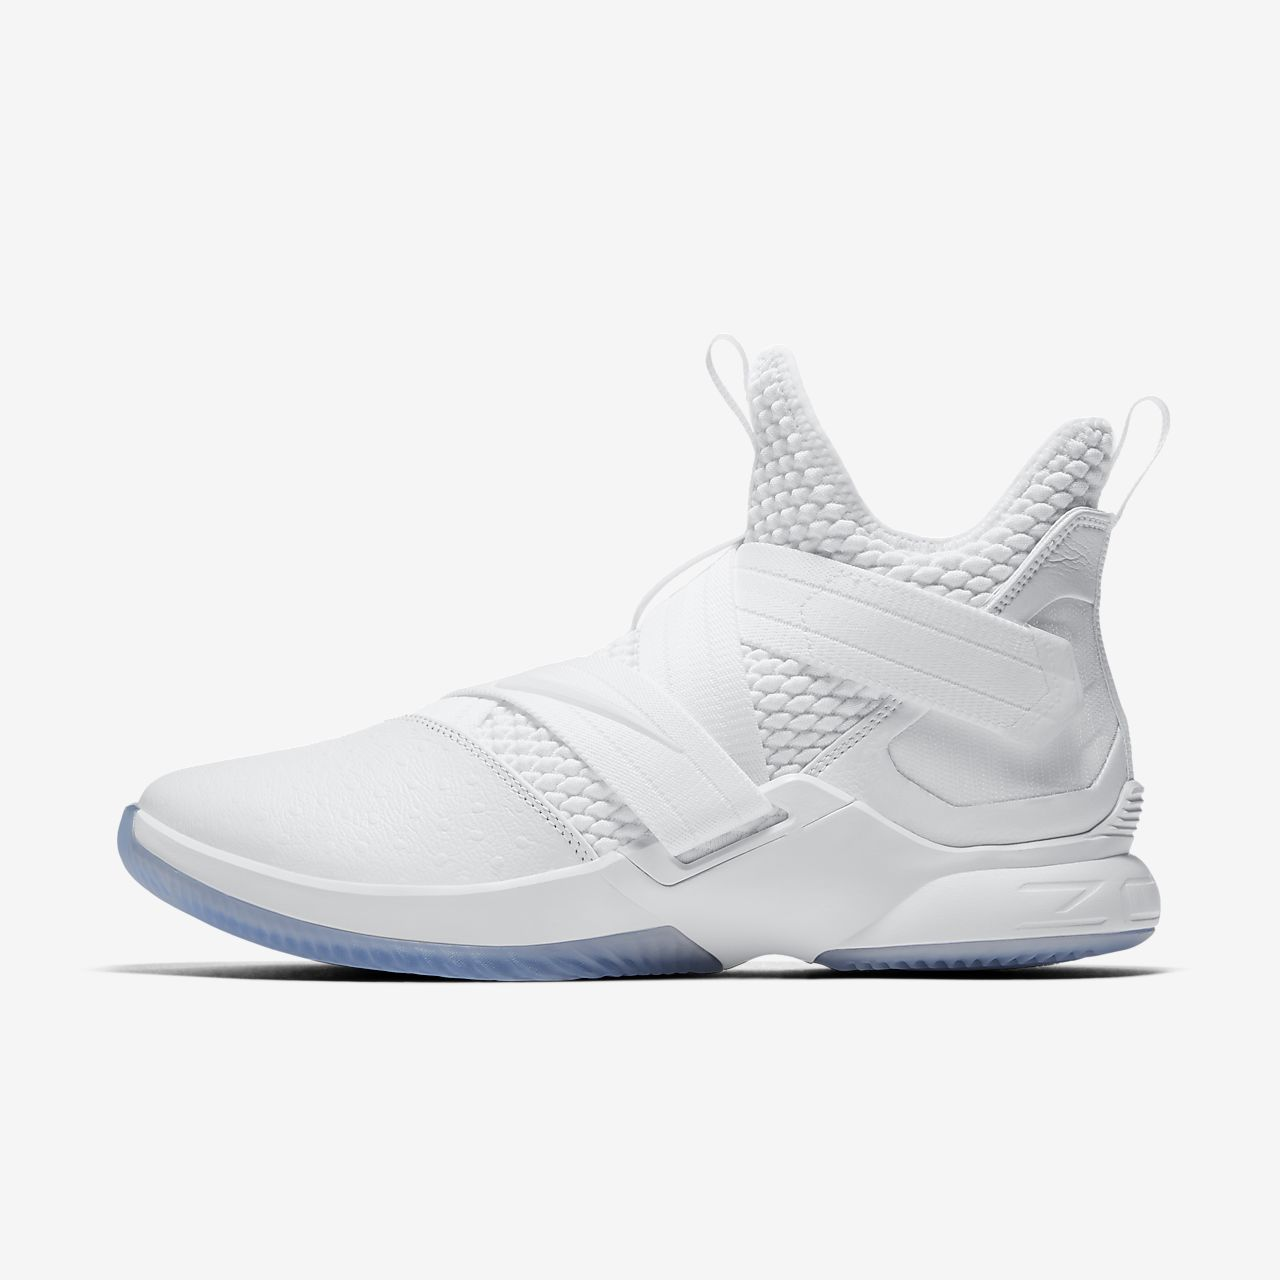 33fad2d1456 LeBron Soldier 12 SFG Basketball Shoe. Nike.com GB